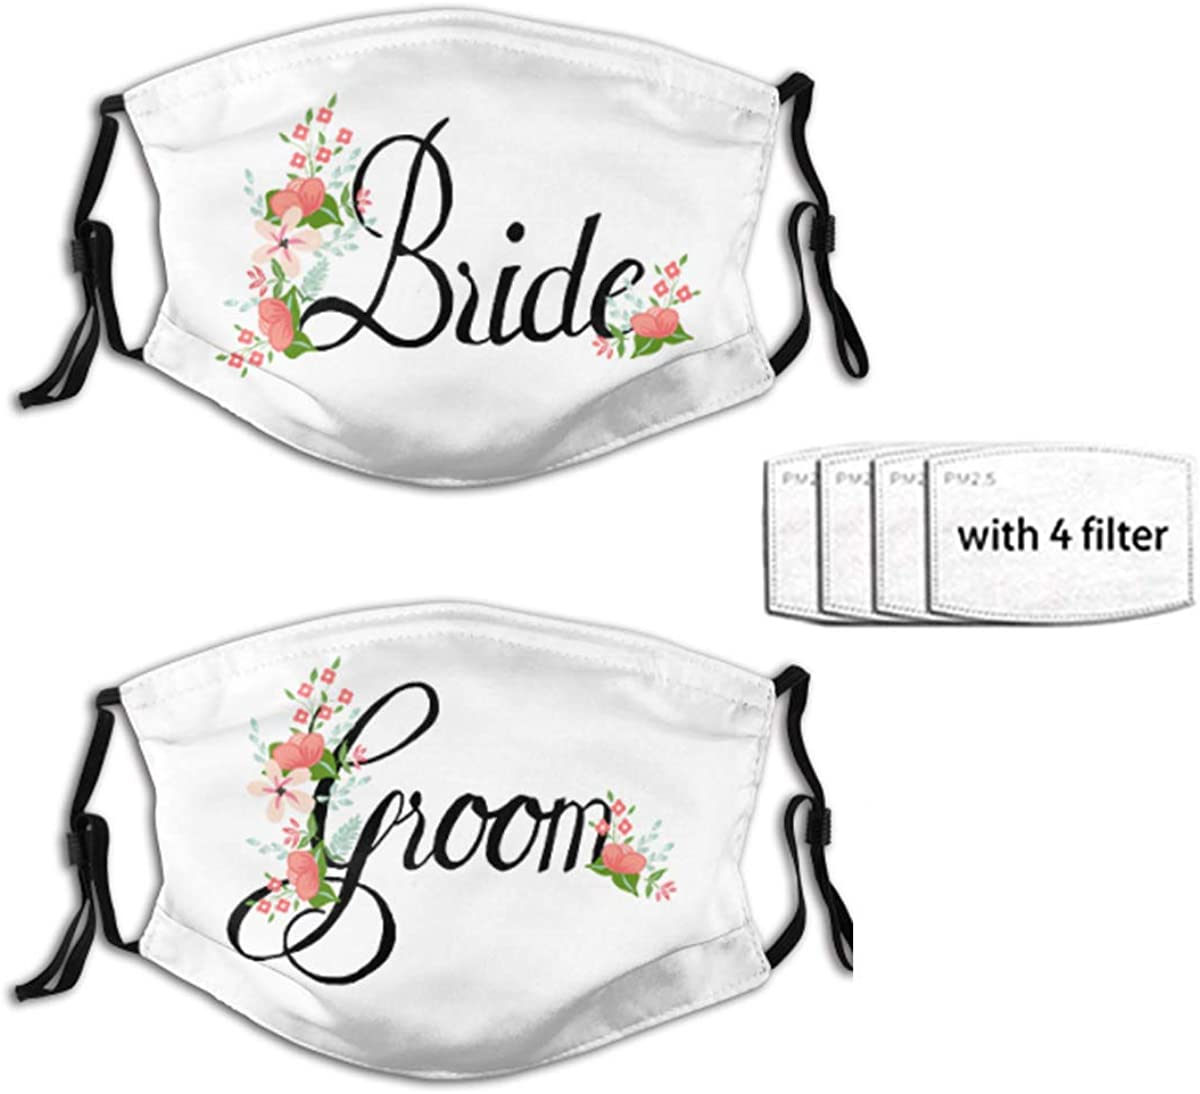 2PCS Bride And Groom Face Mask Reusable Washable Bandanas With Adjustable Earloops Fashion Scarves For Adult 4 Filters